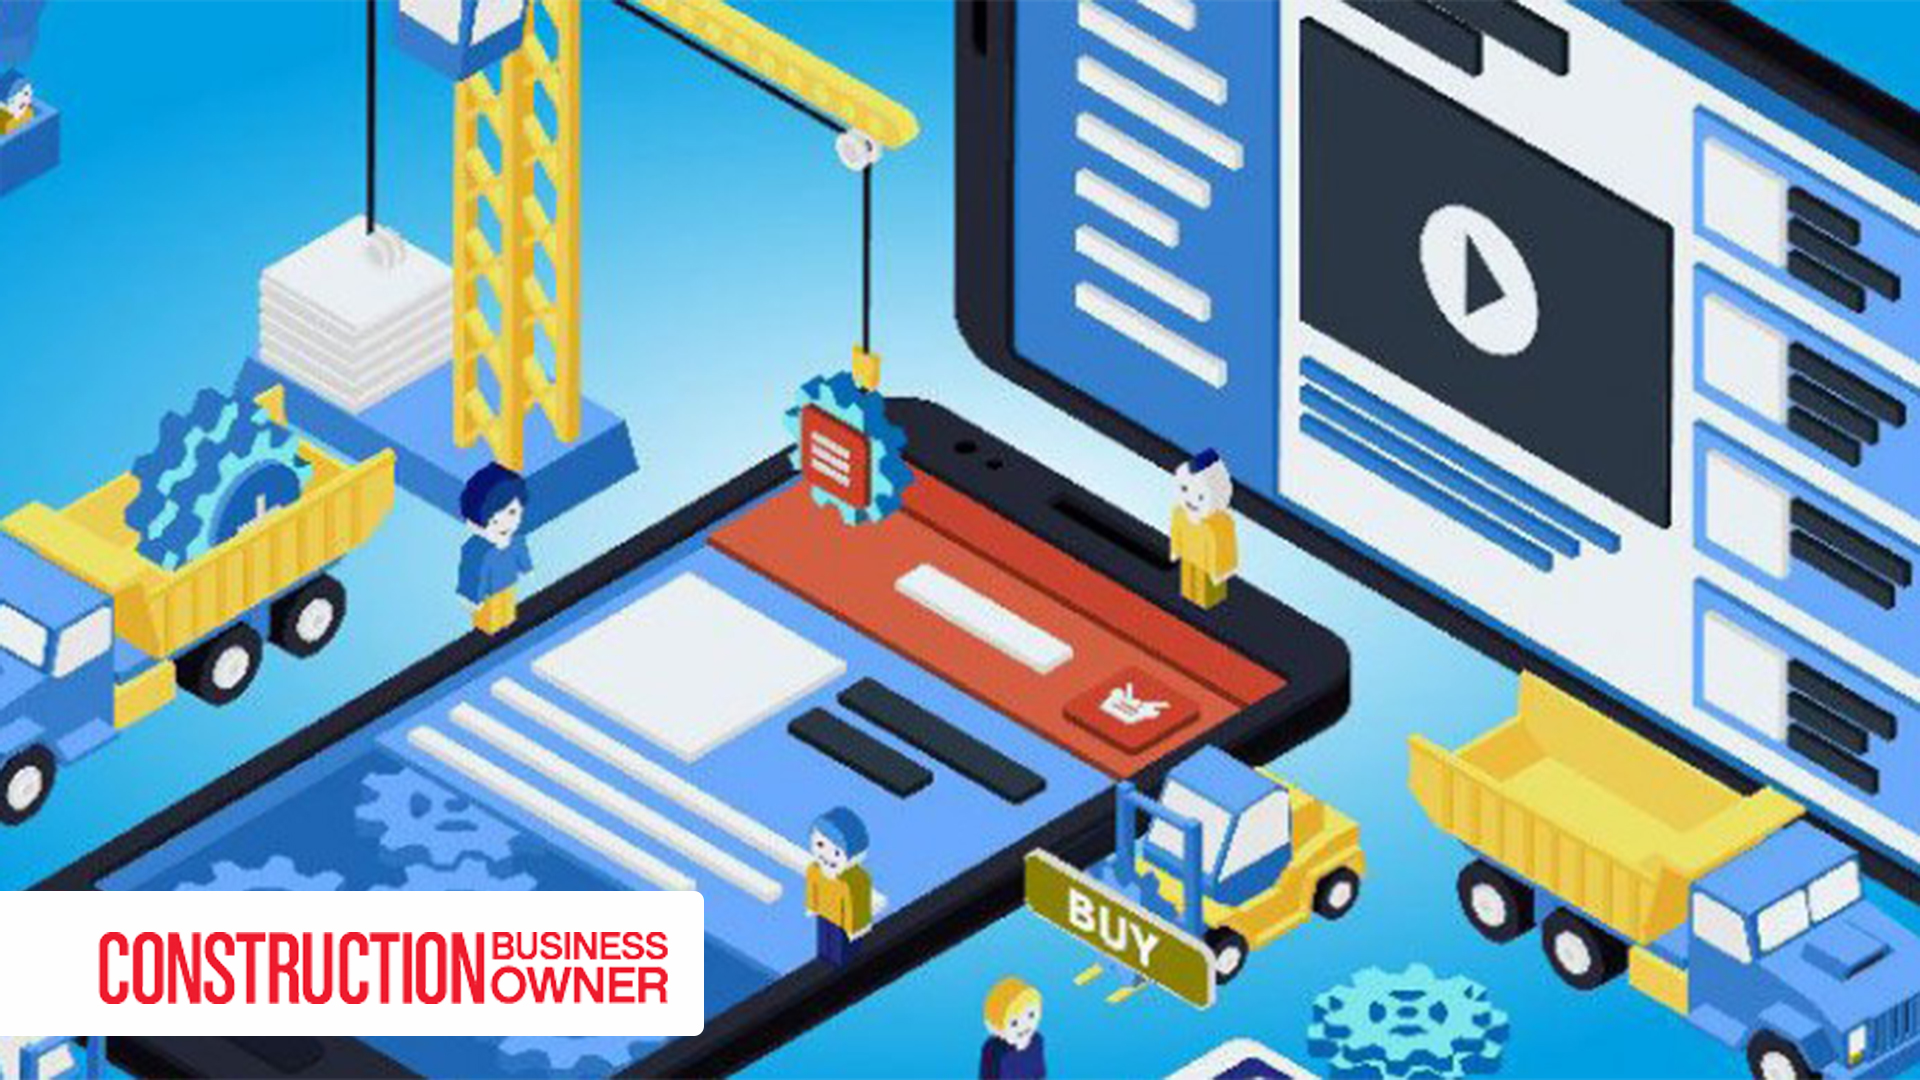 How Integration Brings Construction Into the Digital Age